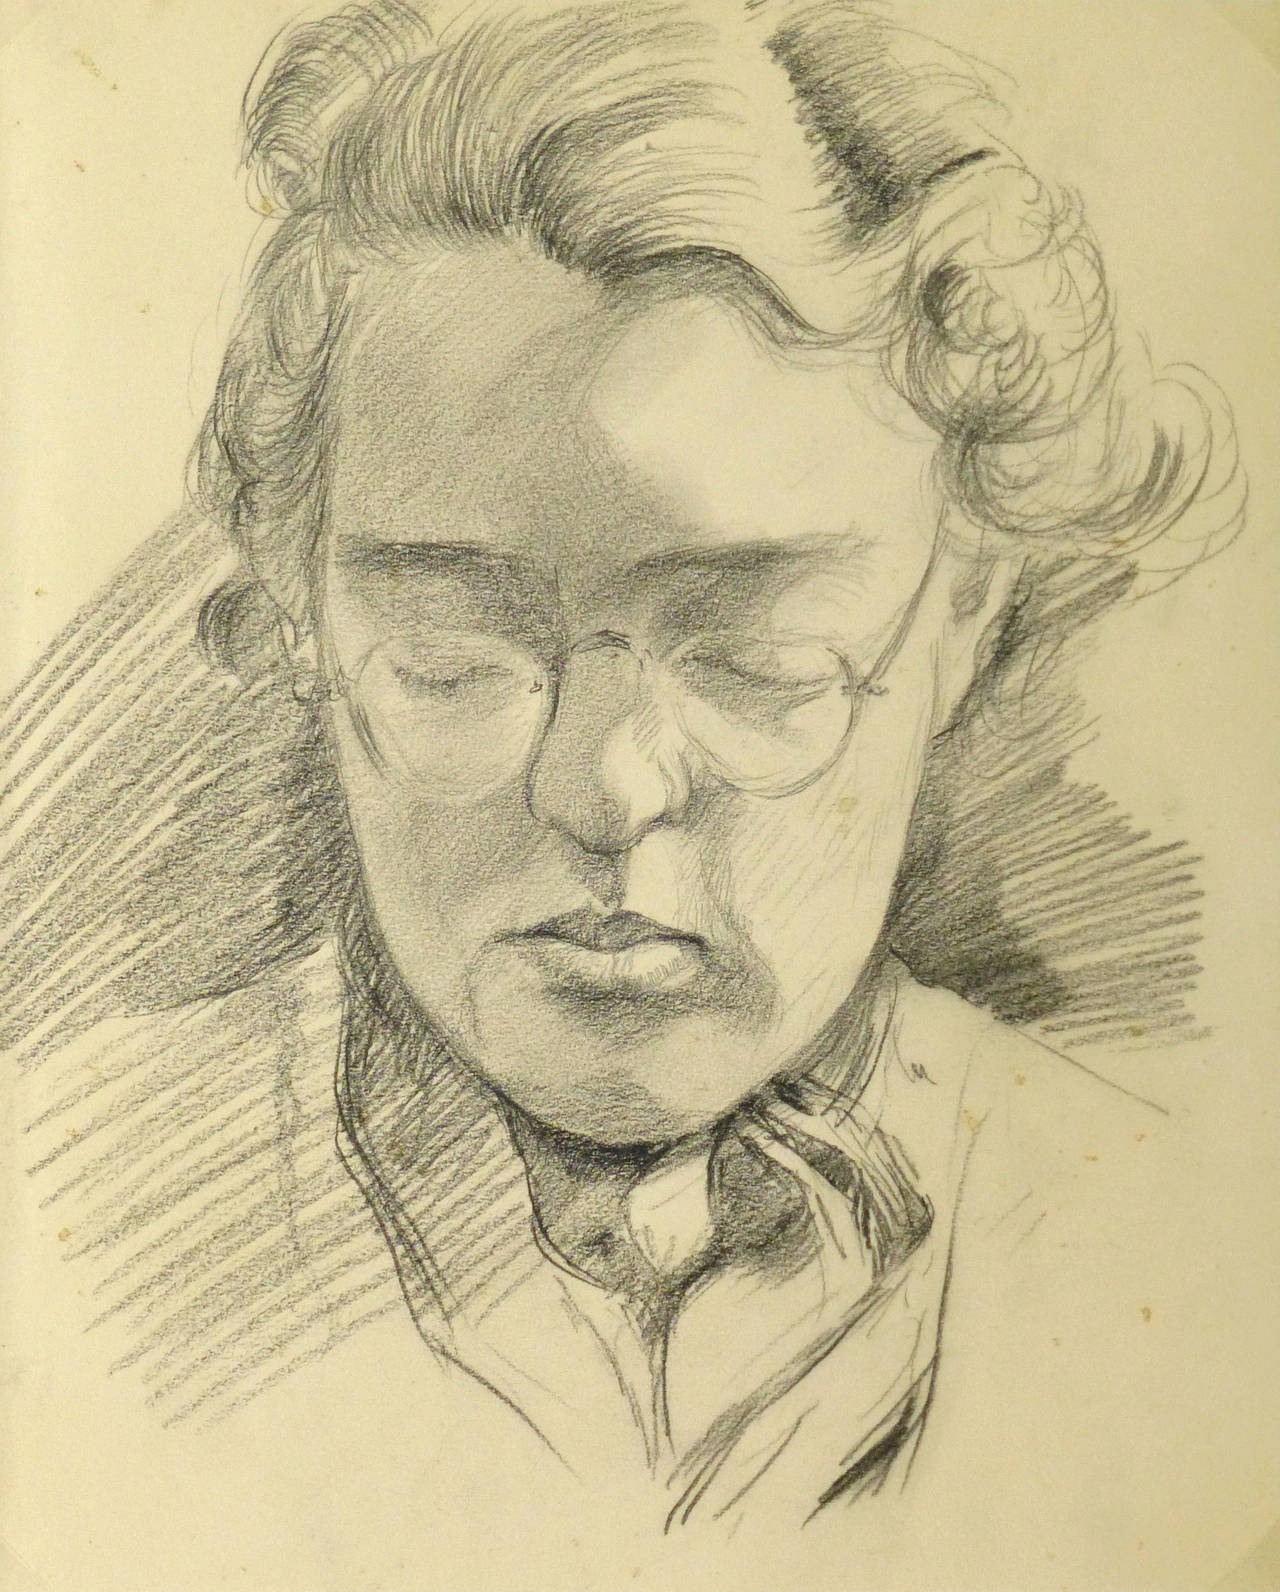 Vintage pencil drawing of woman